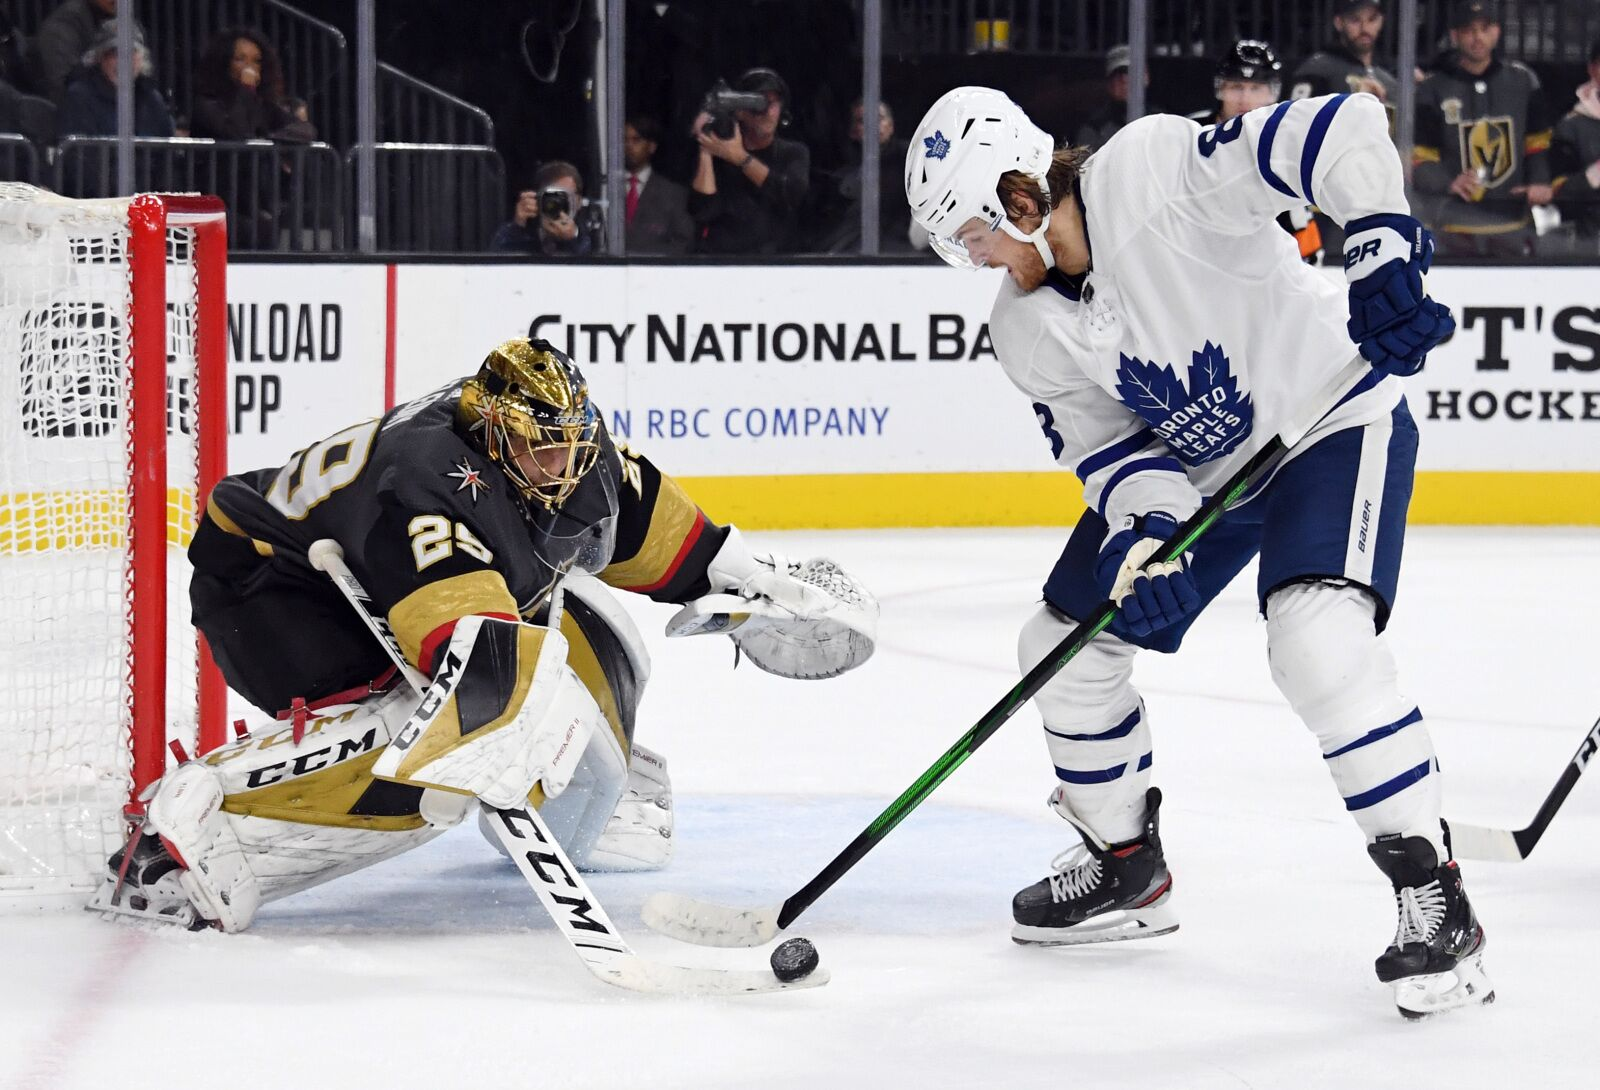 Toronto Maple Leafs: Same old story comes back to bite them in Sin City